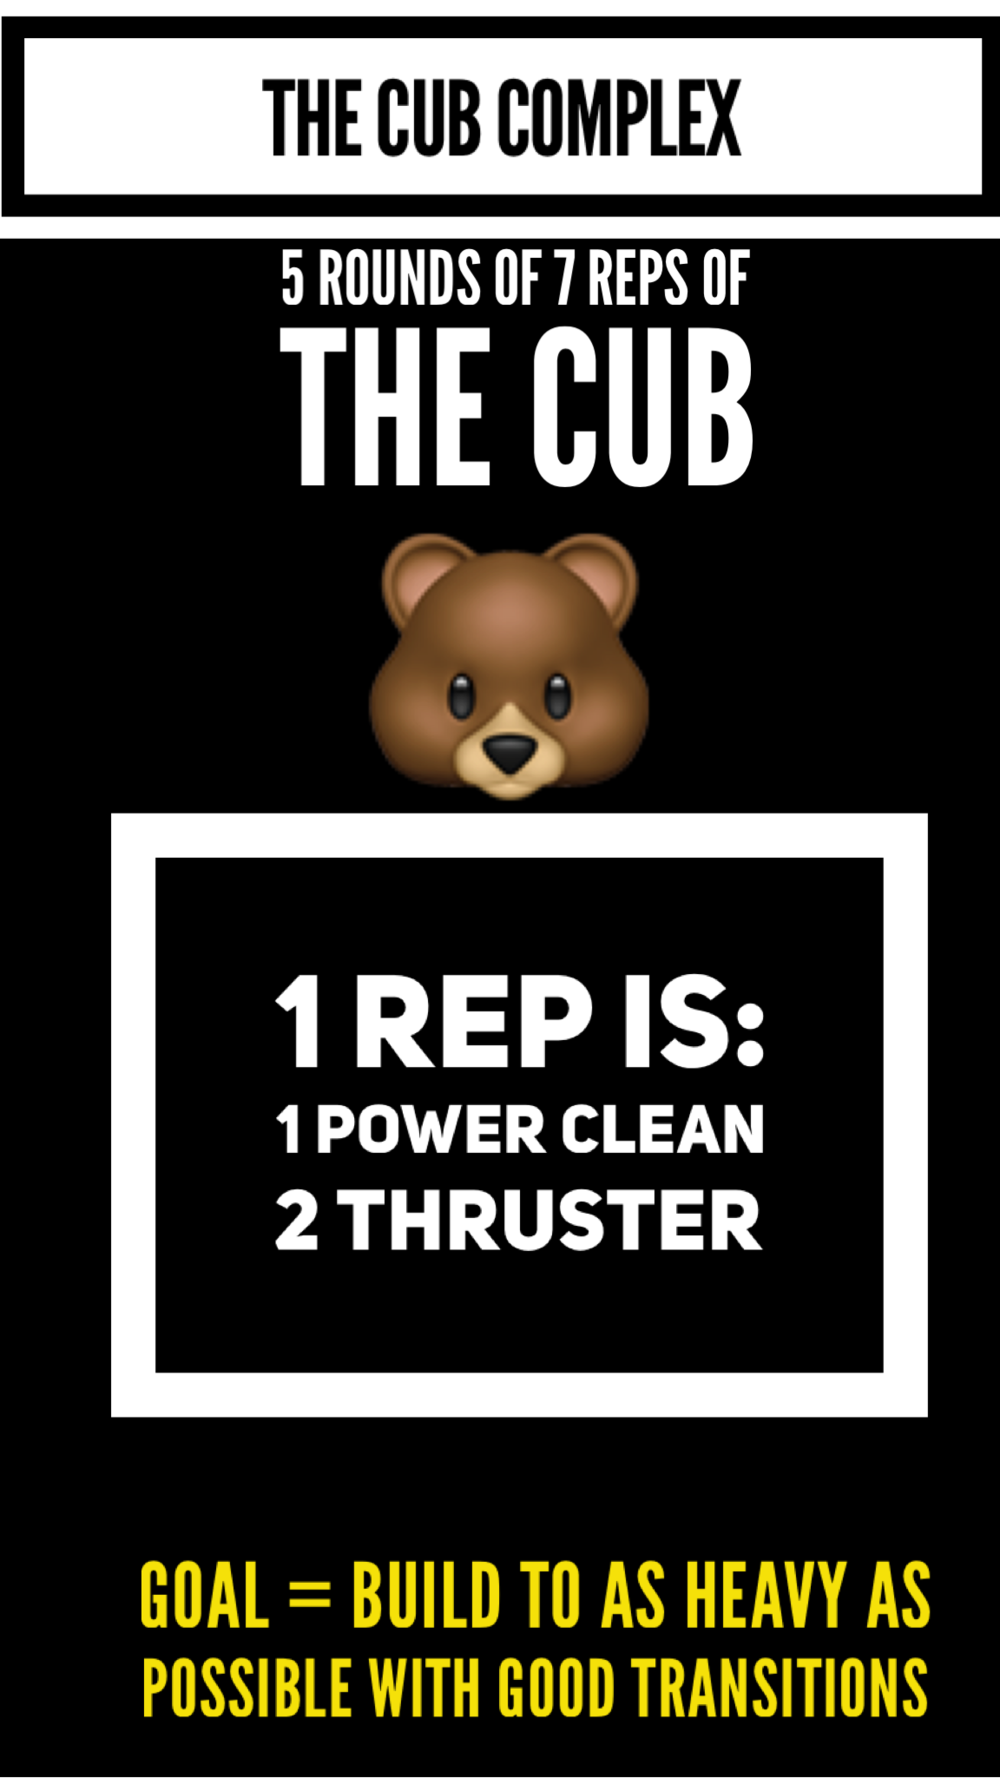 Regrips at the floor are allowed. All newer athletes and anyone uncomfortable bringing the bar down behind the neck should challenge themselves with the cub complex.